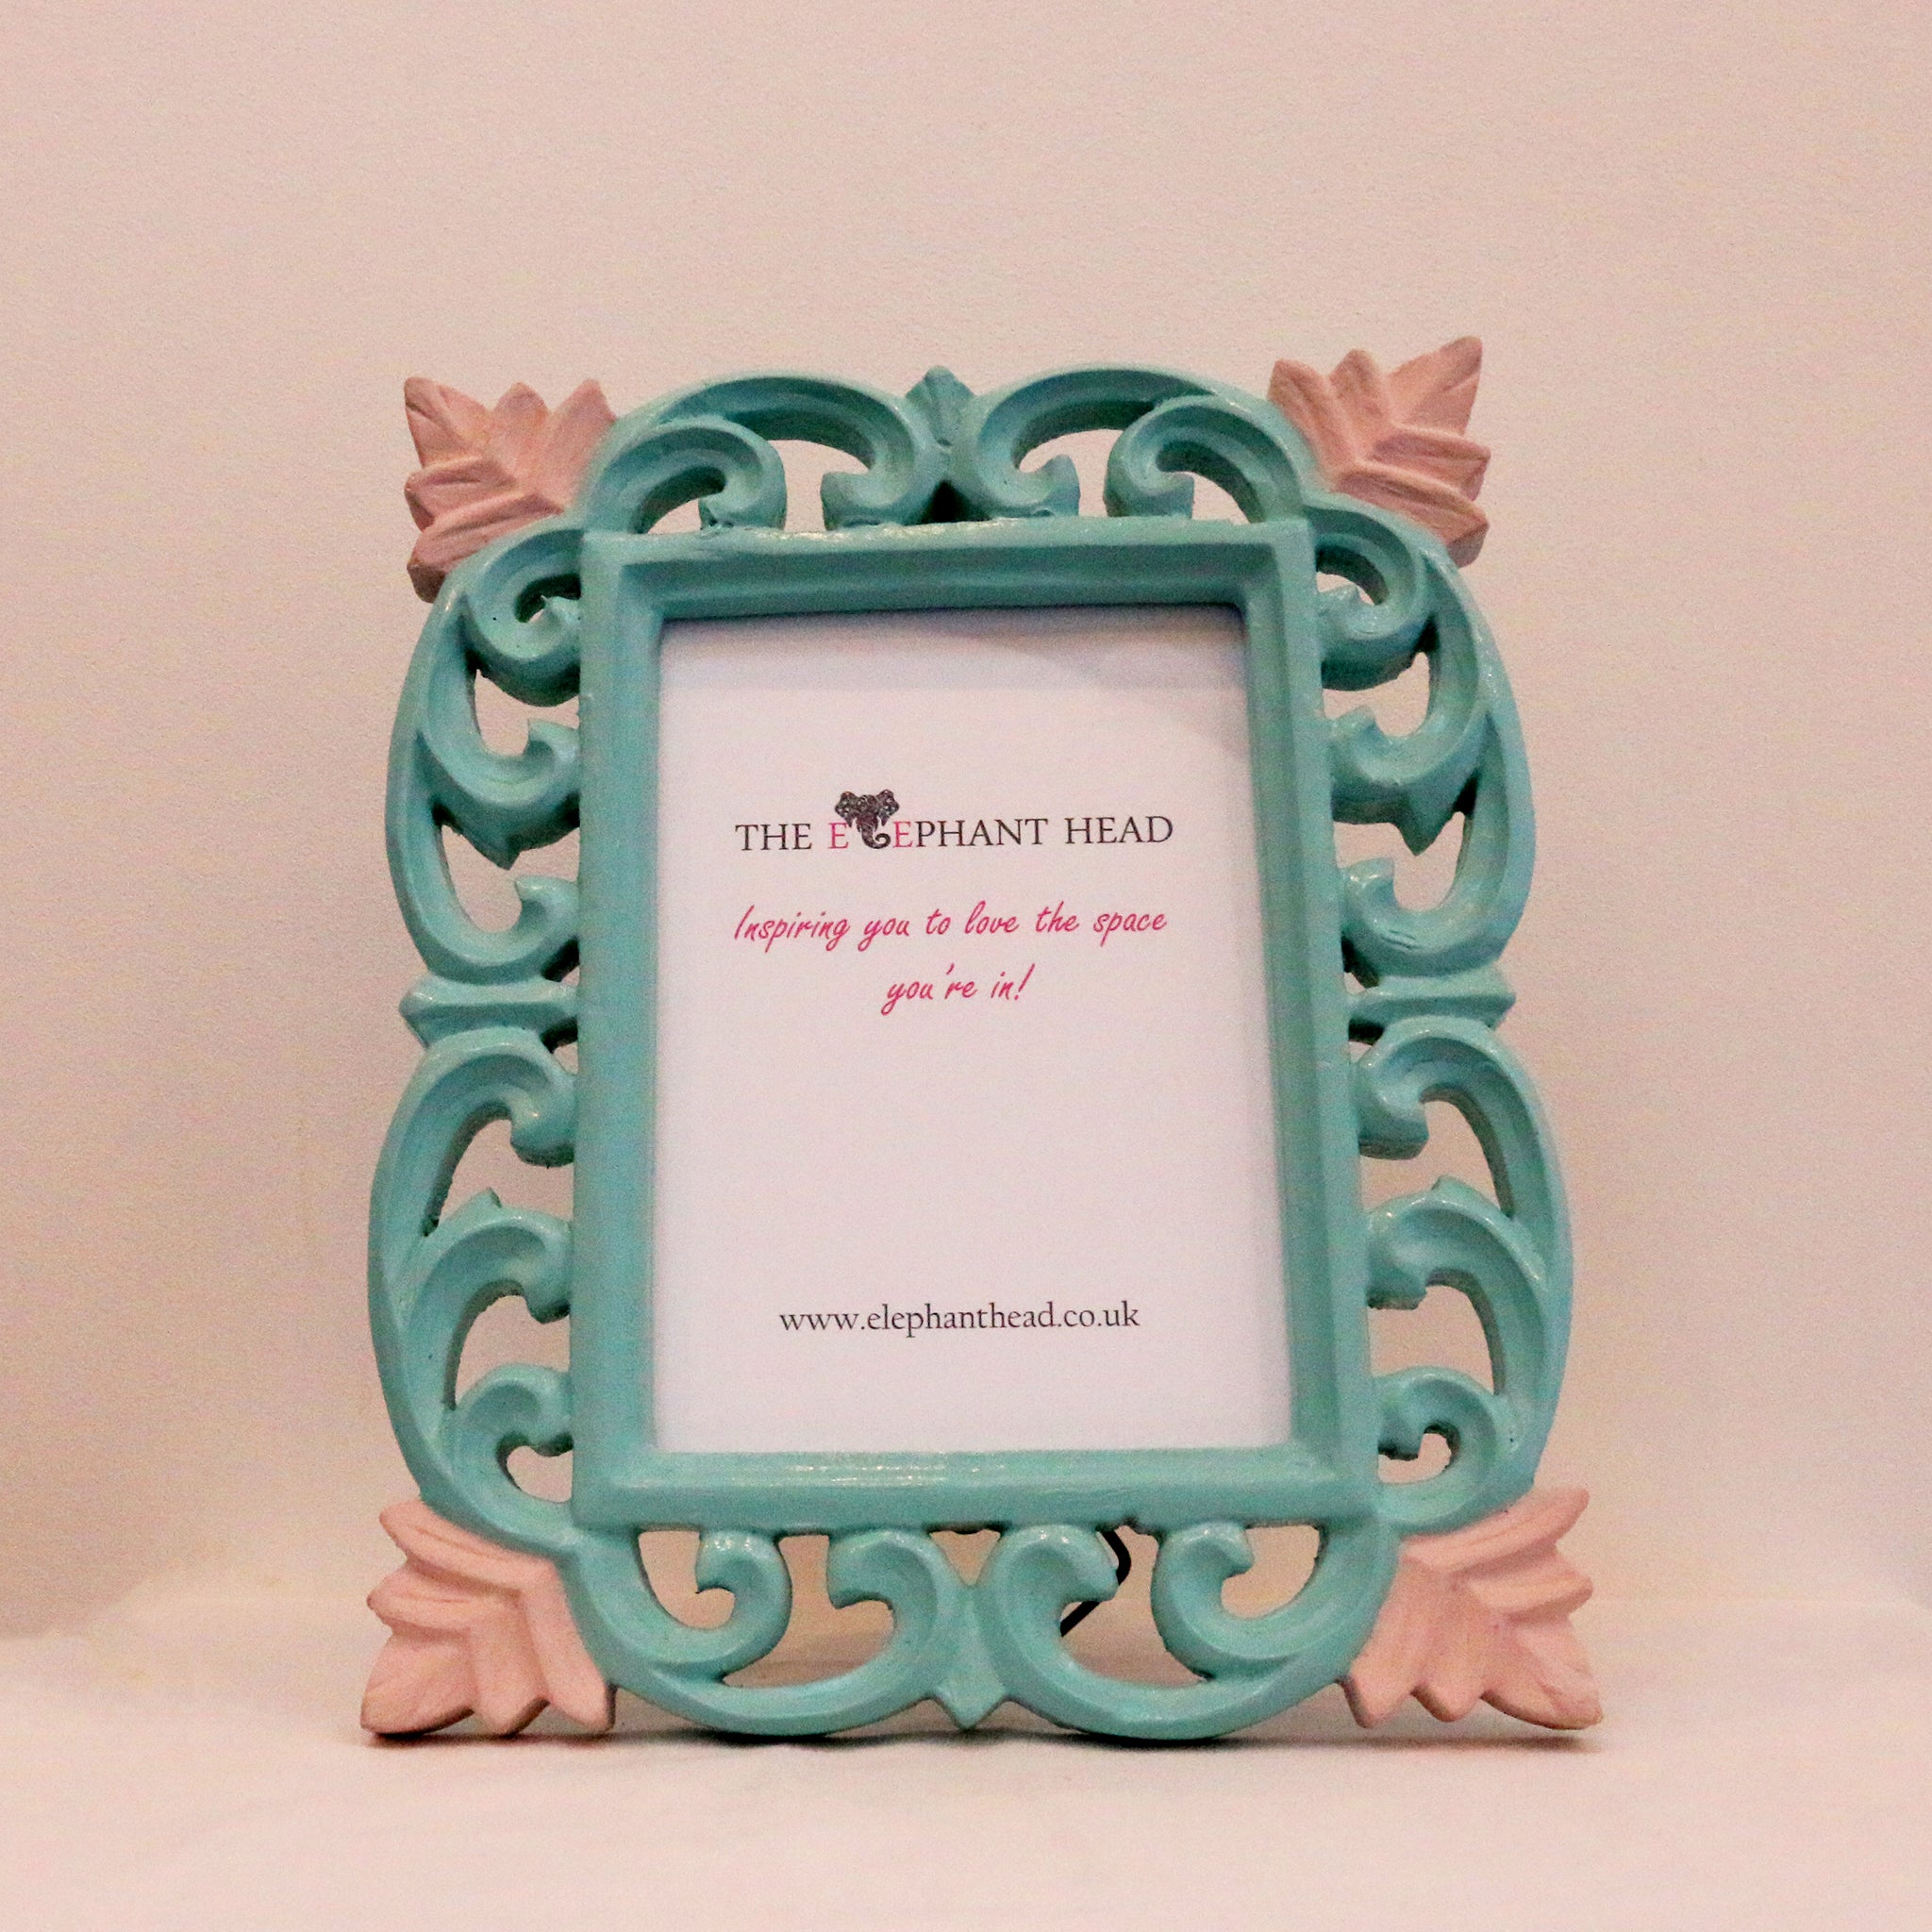 Teal surround and light pink flowers front view of picture frame